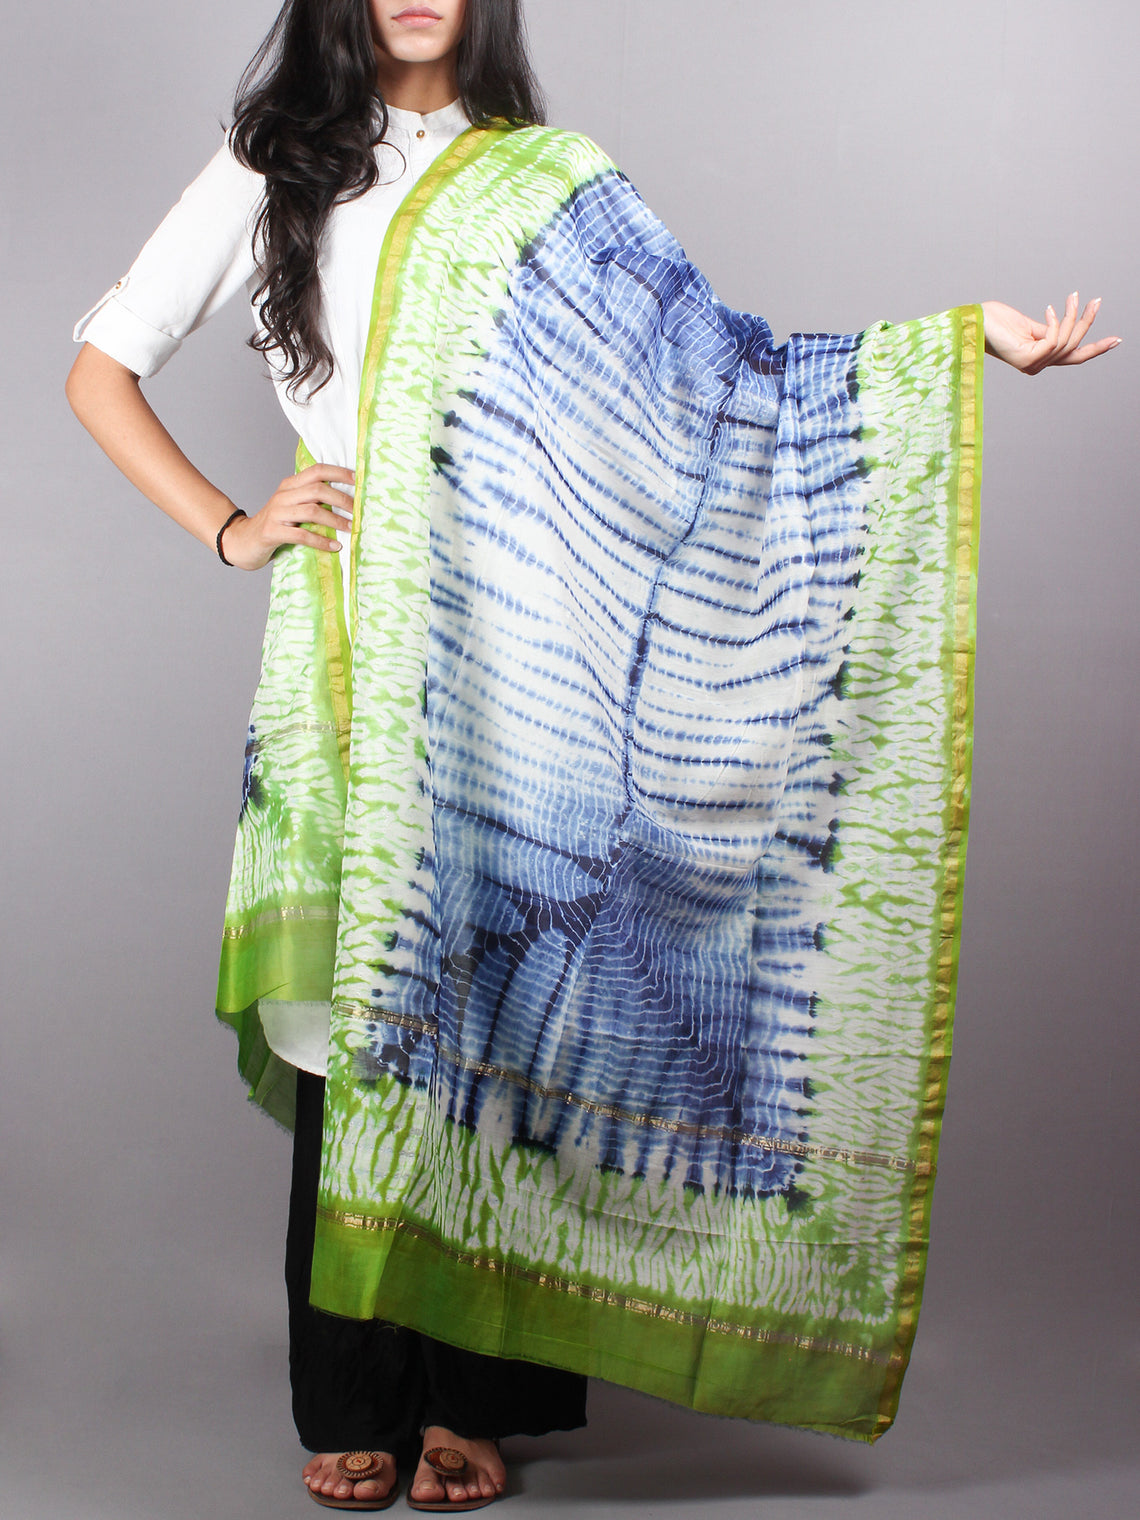 Indigo Mint Green Chanderi Shibori Dyed in Natural Colors Dupatta with Bandani Touch - D0417047